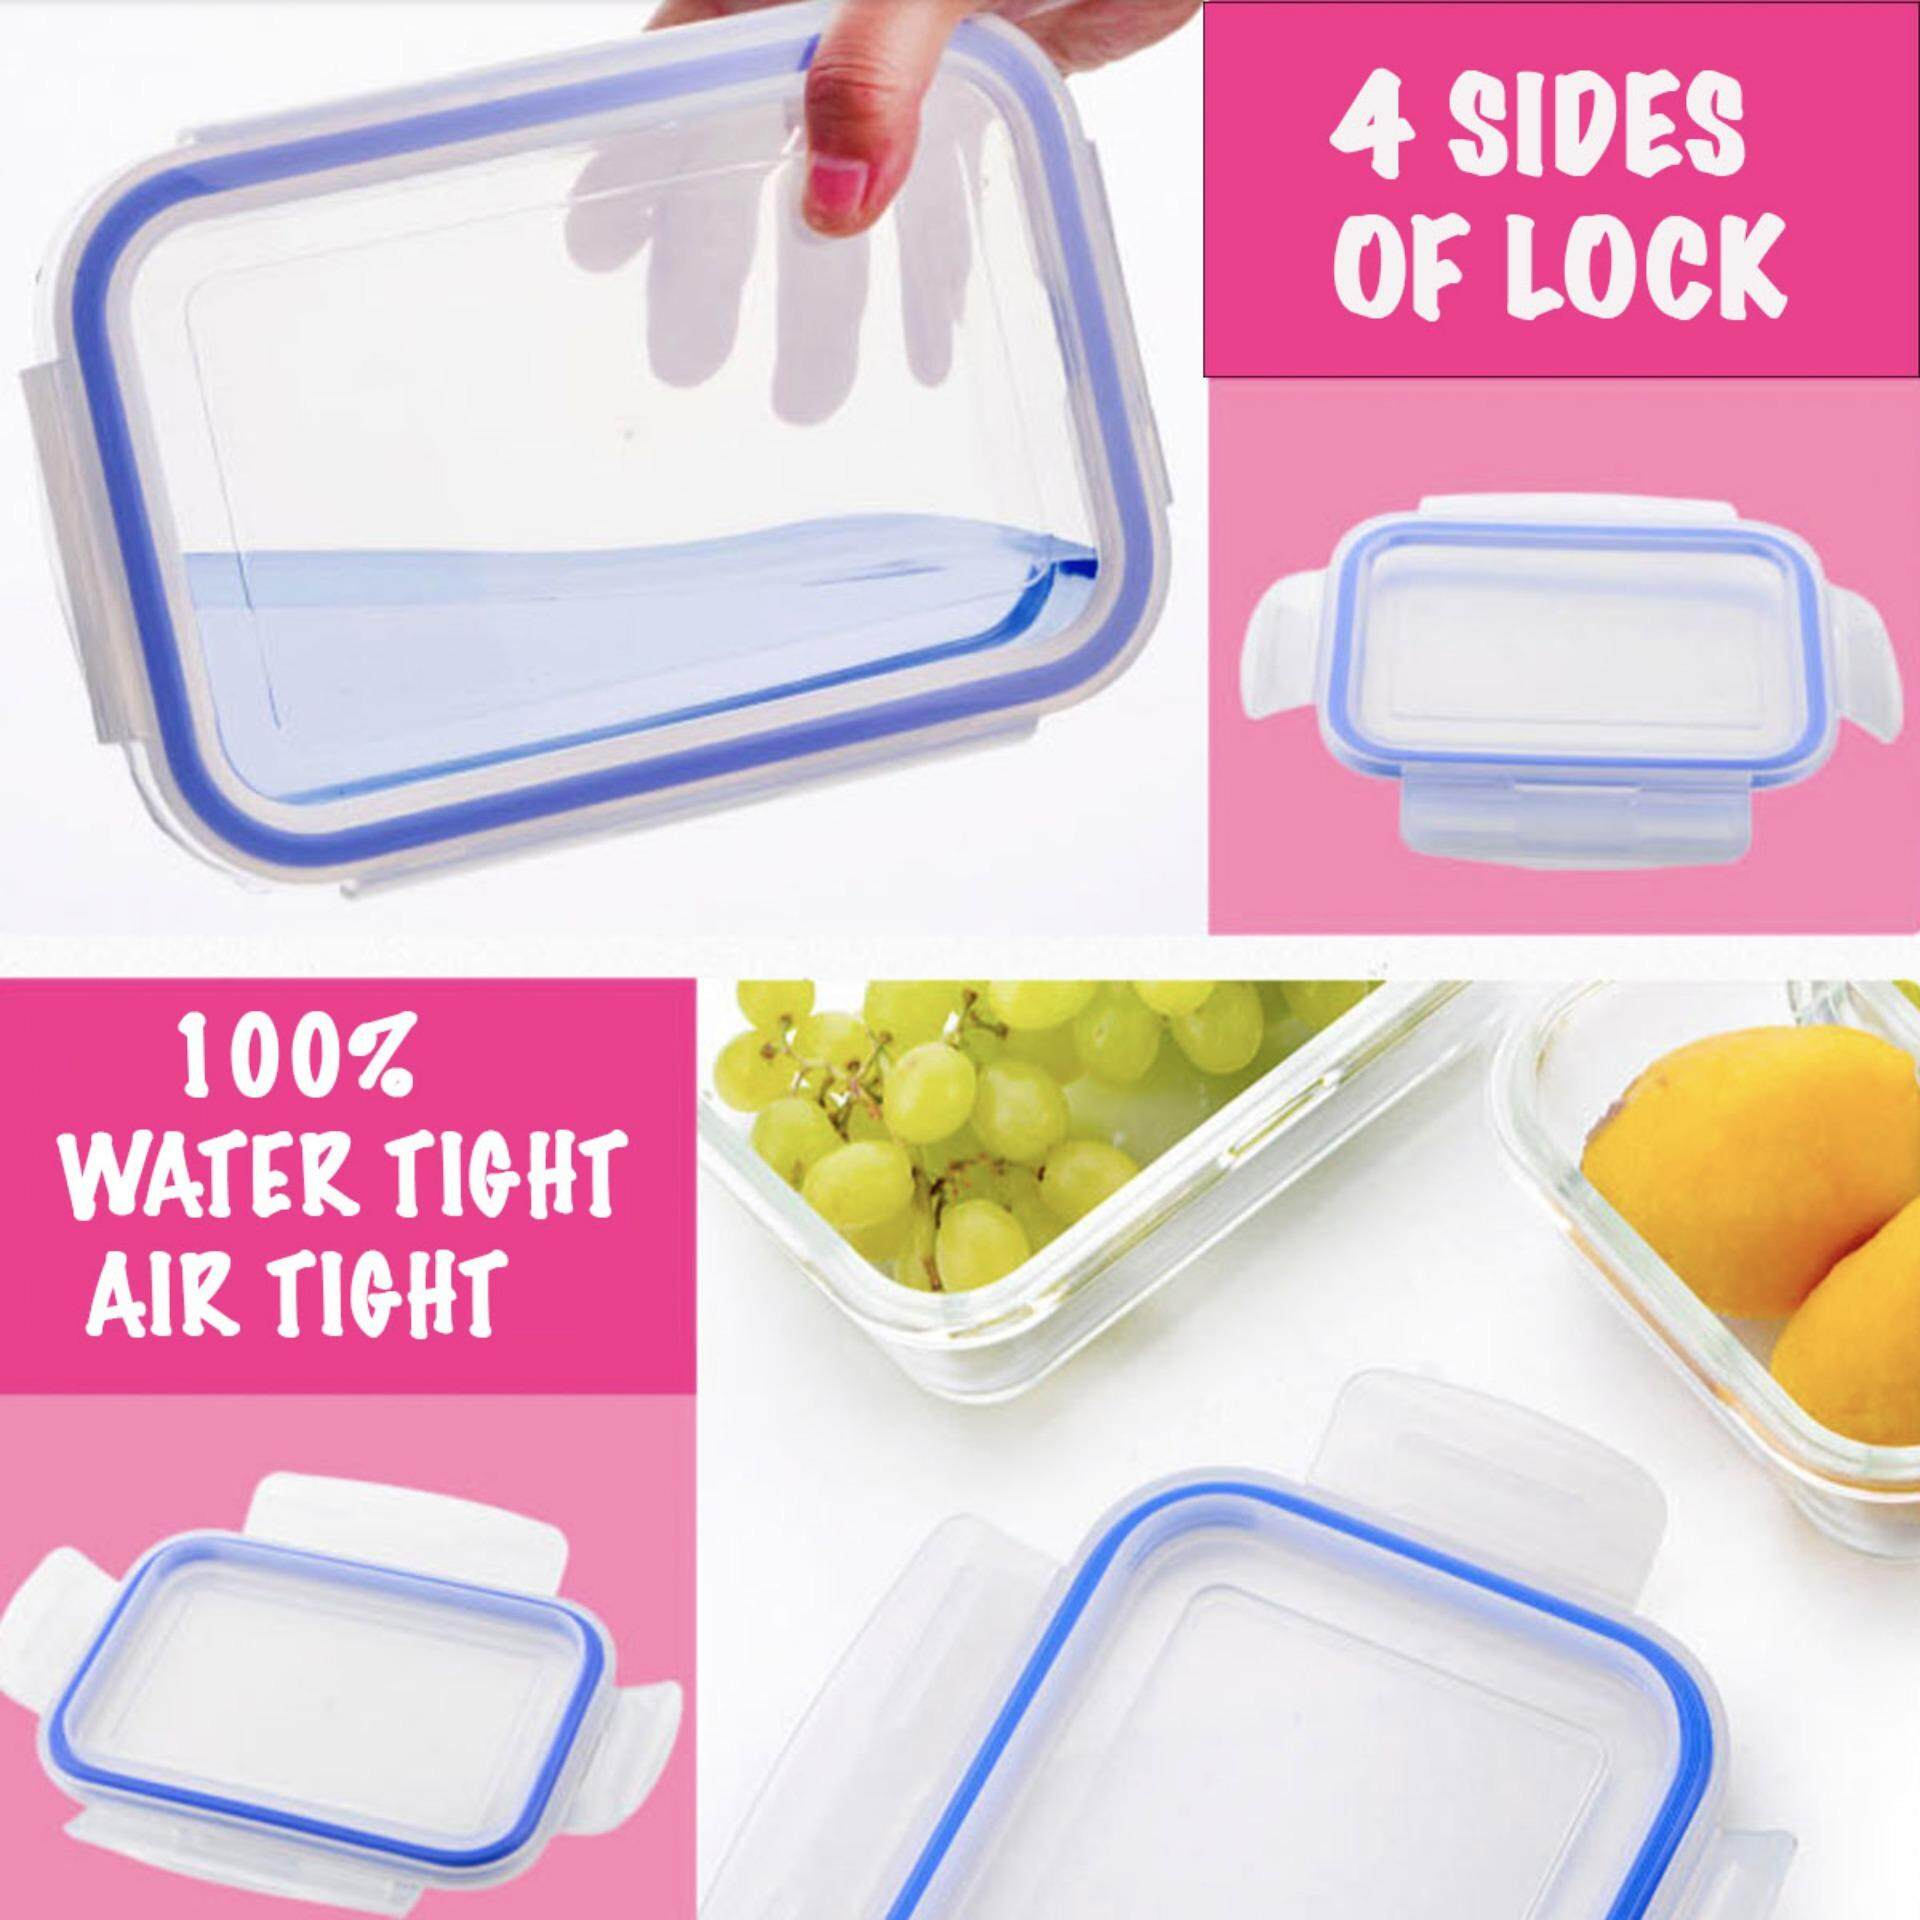 TEKKASHOP H0268 Microwave Oven Proof Lunch Box Food Glass Container + Free Gift